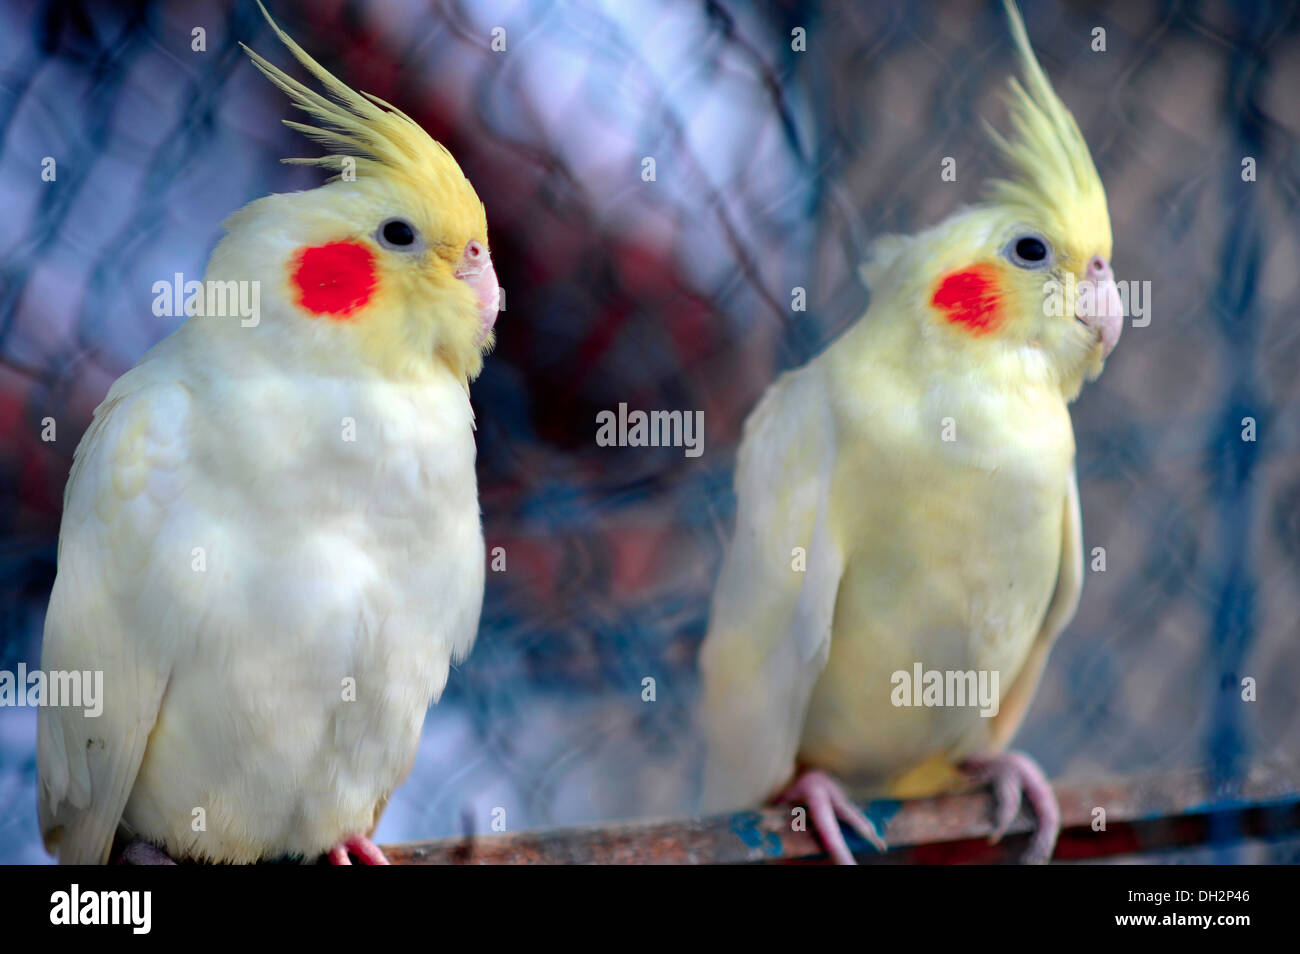 pearl pied cockatiel birds for sale in bird market kolkata india